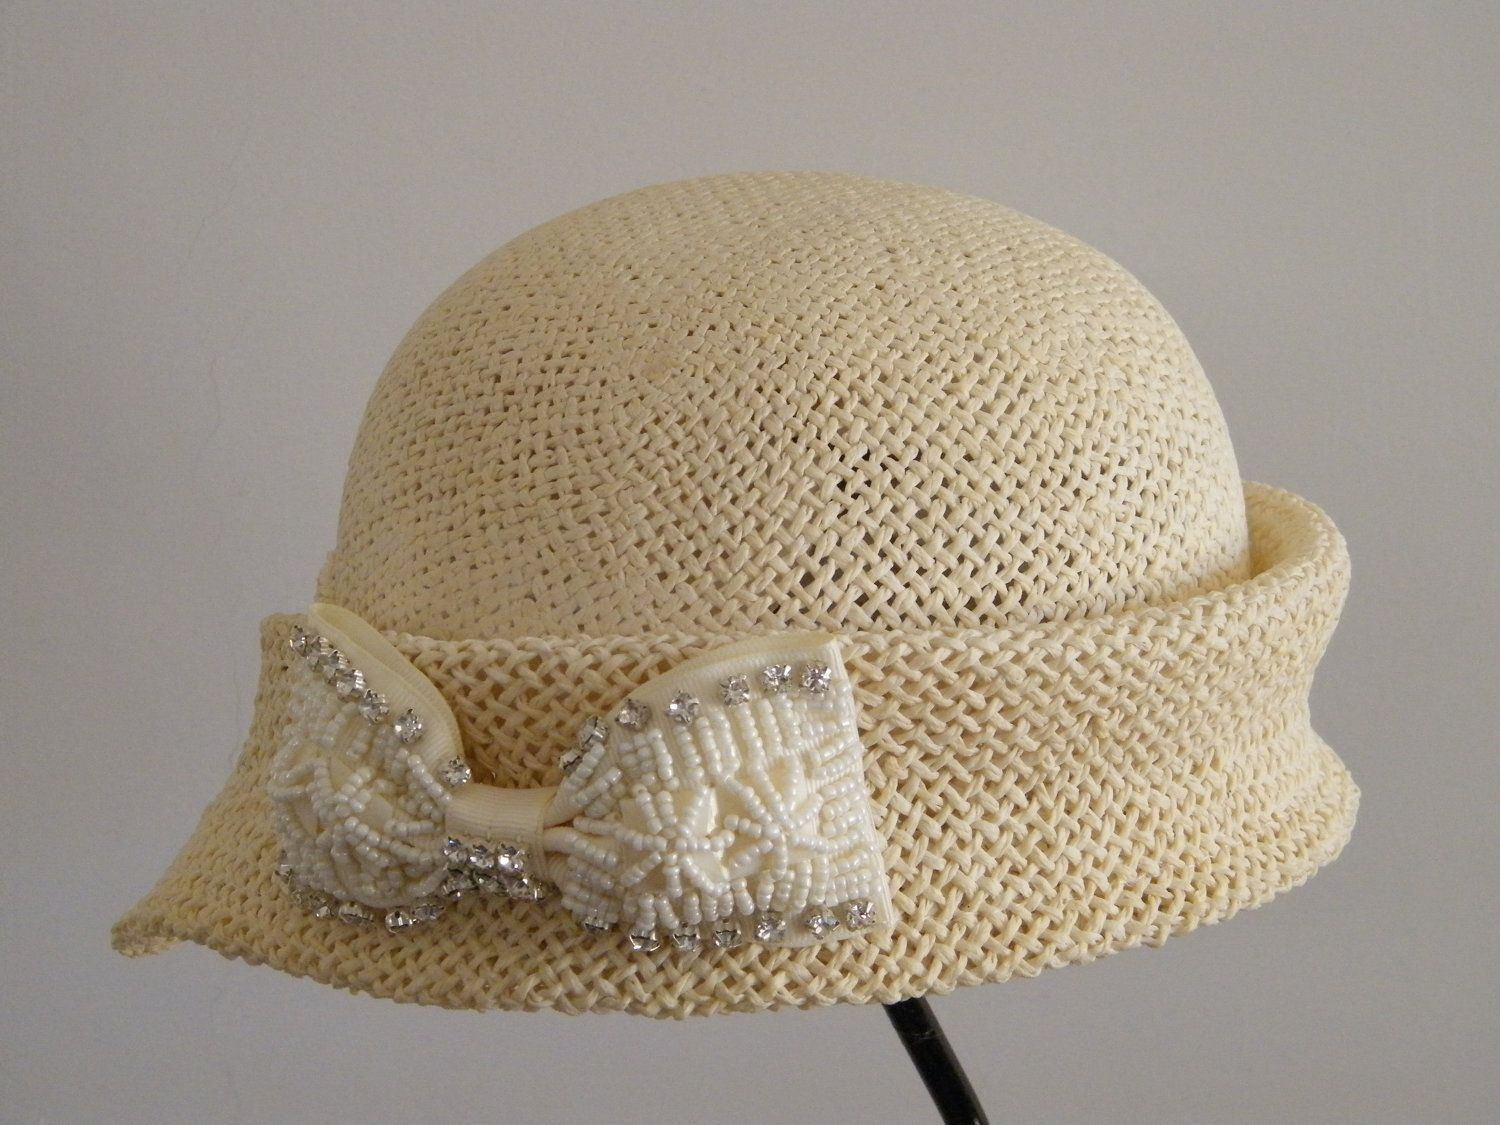 Women s 20 s style hat for women - Dressy off white straw - hat for small  head.  65.00 fa74cf8a66a